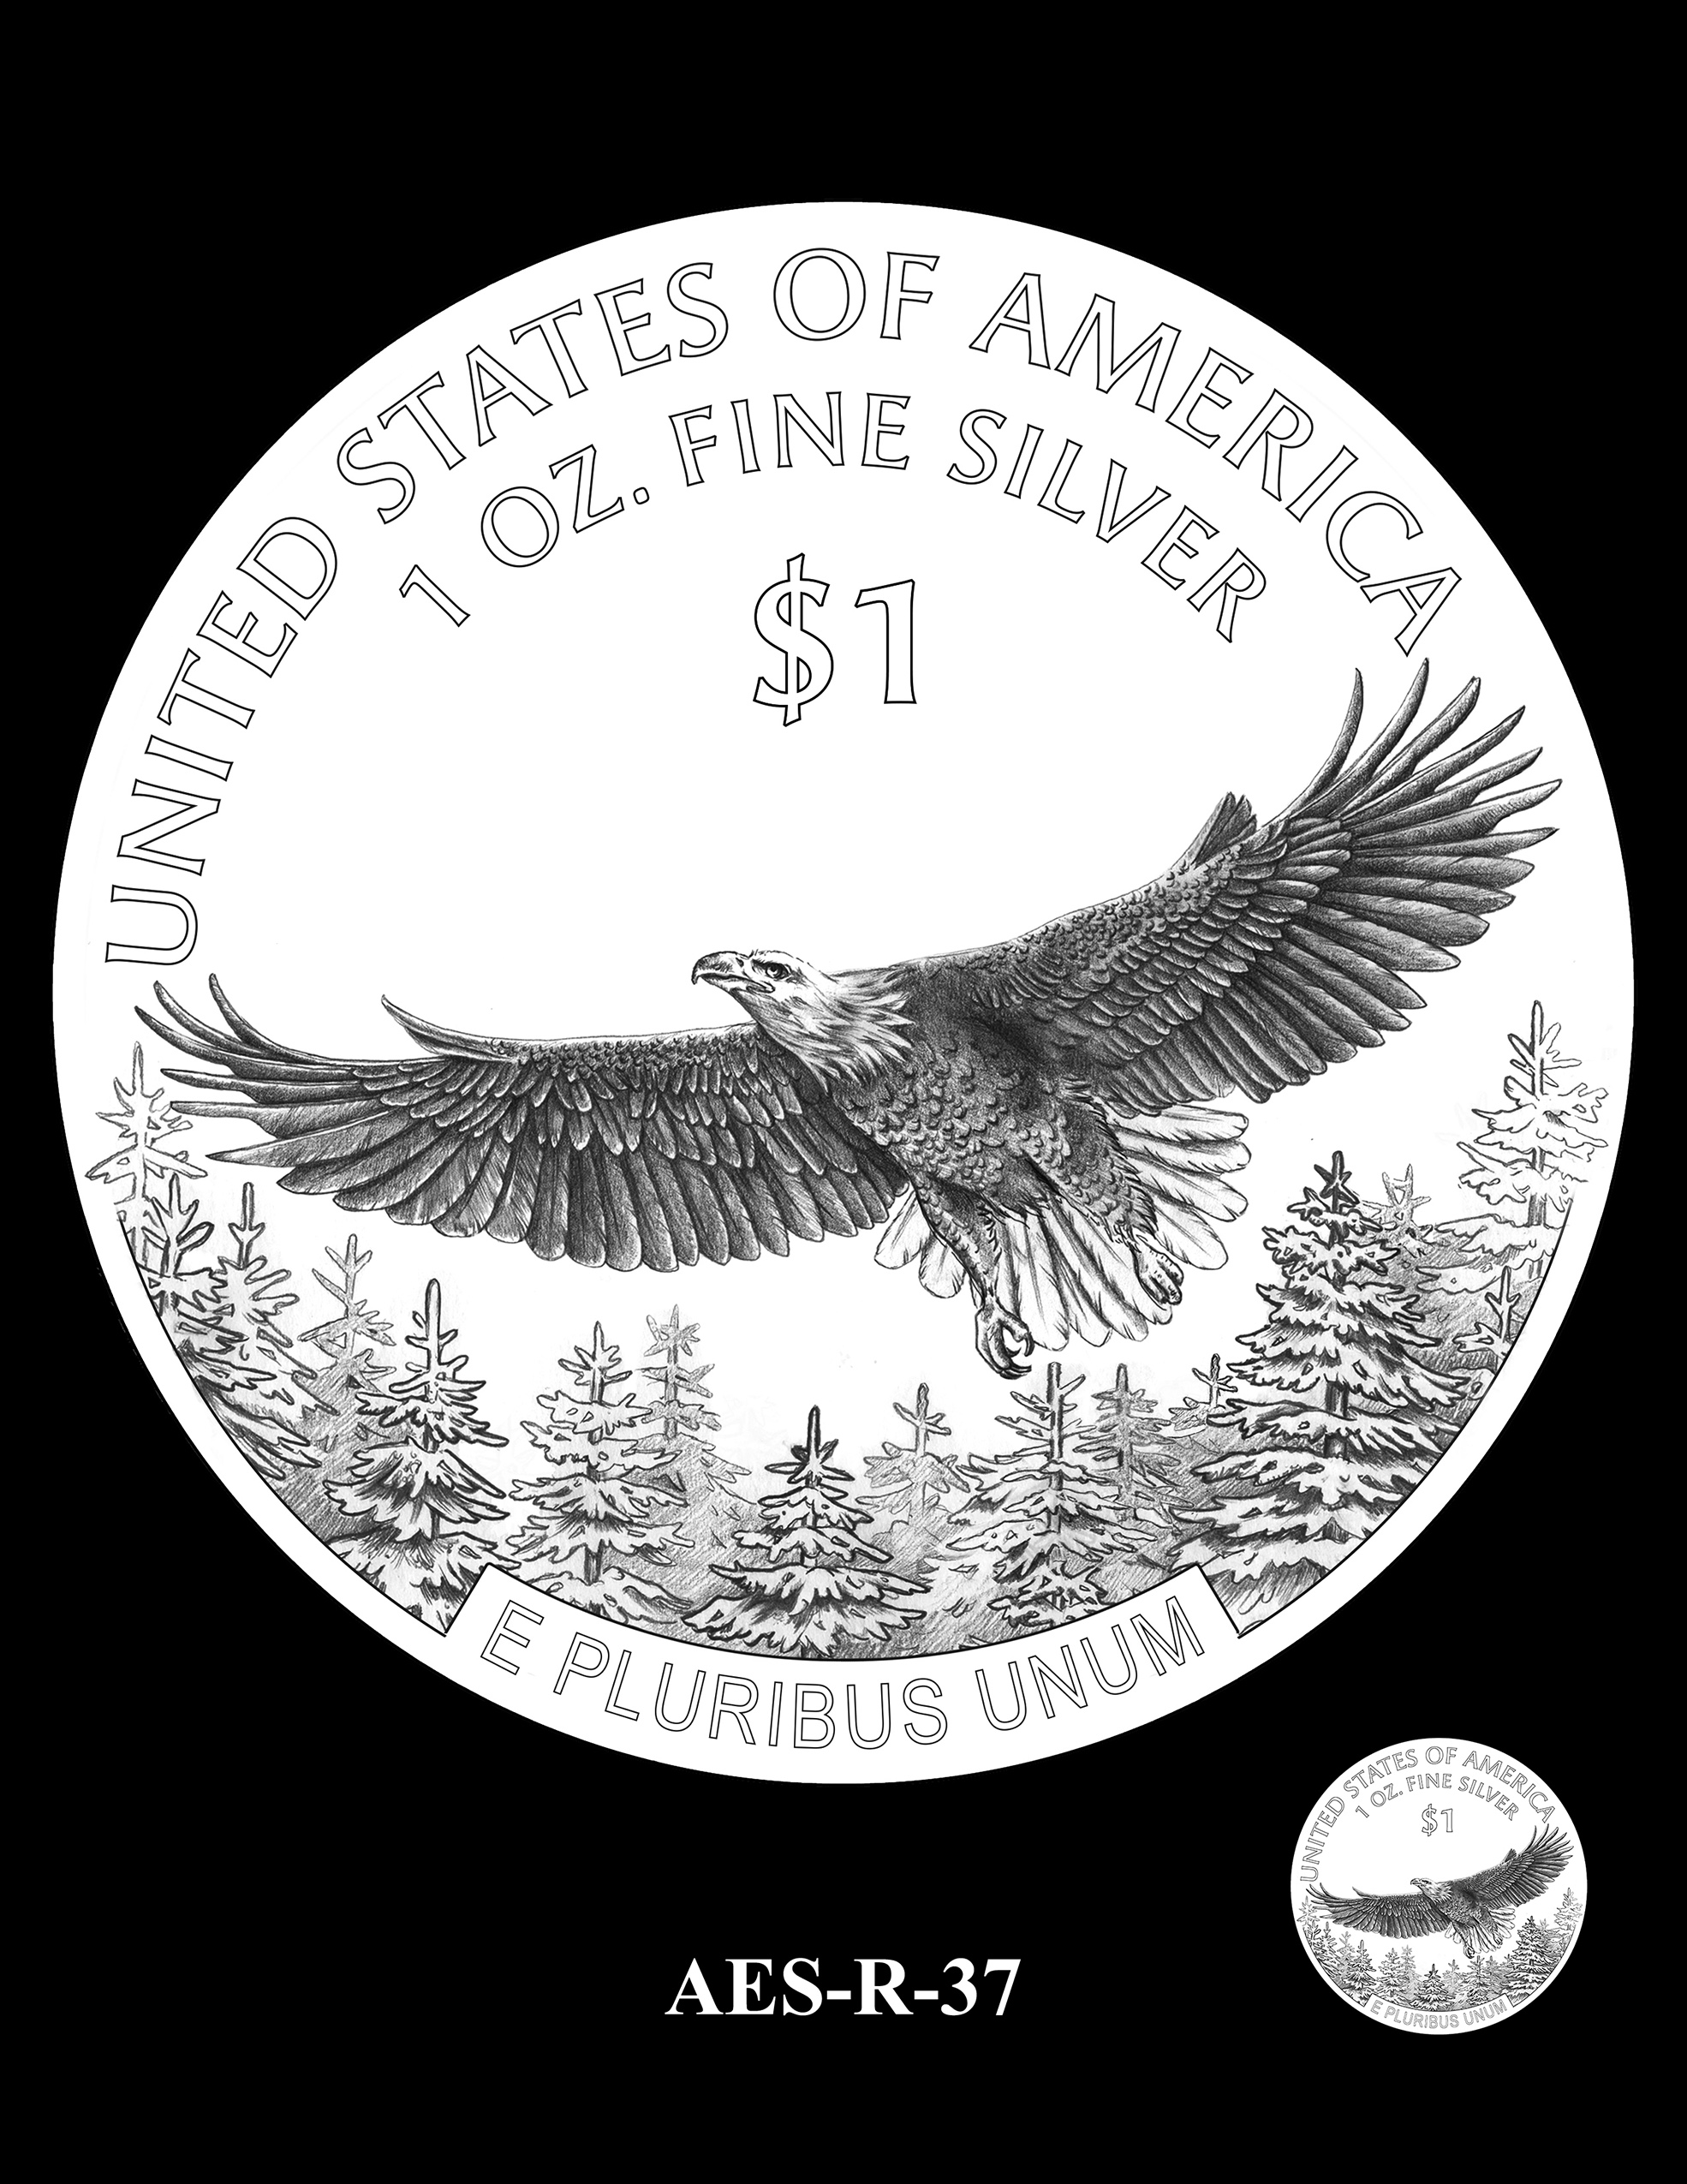 AES-R-37 -- American Eagle Proof and Bullion Silver Coin - Reverse